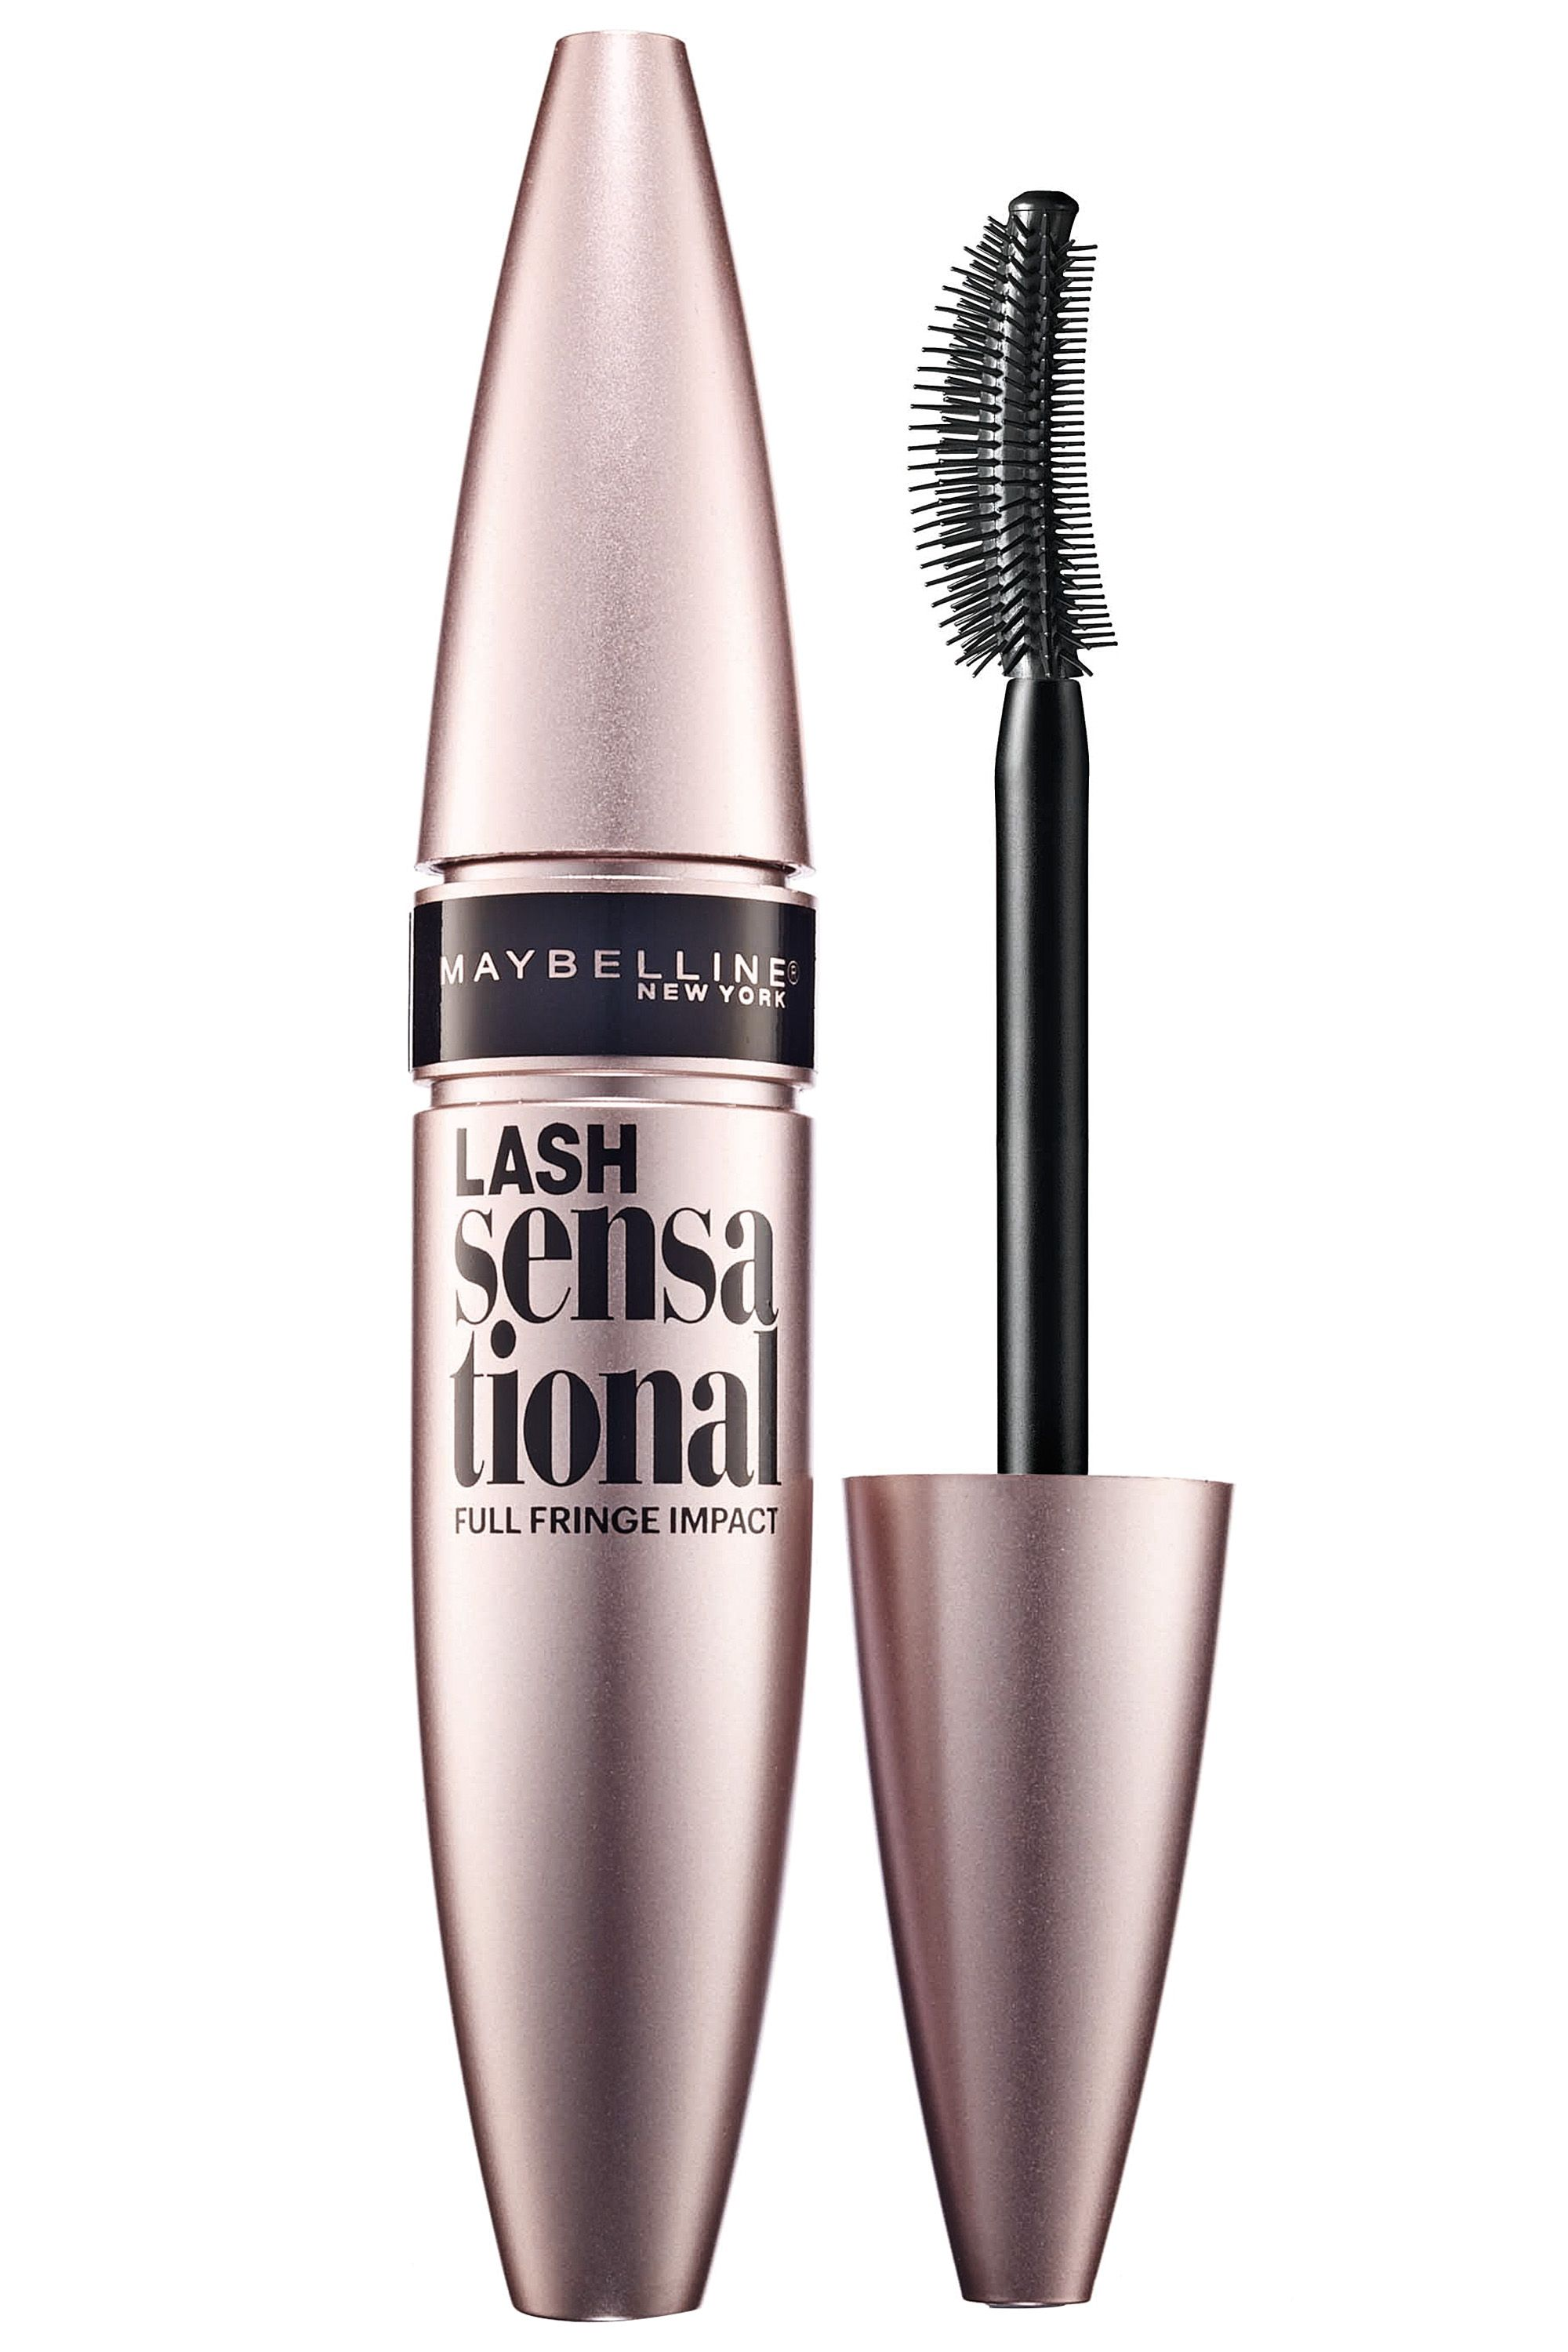 6d49809ba16 Maybelline New York Lash Sensational Mascara in Very Black, $8.99,  maybelline.com. - HarpersBAZAAR.com